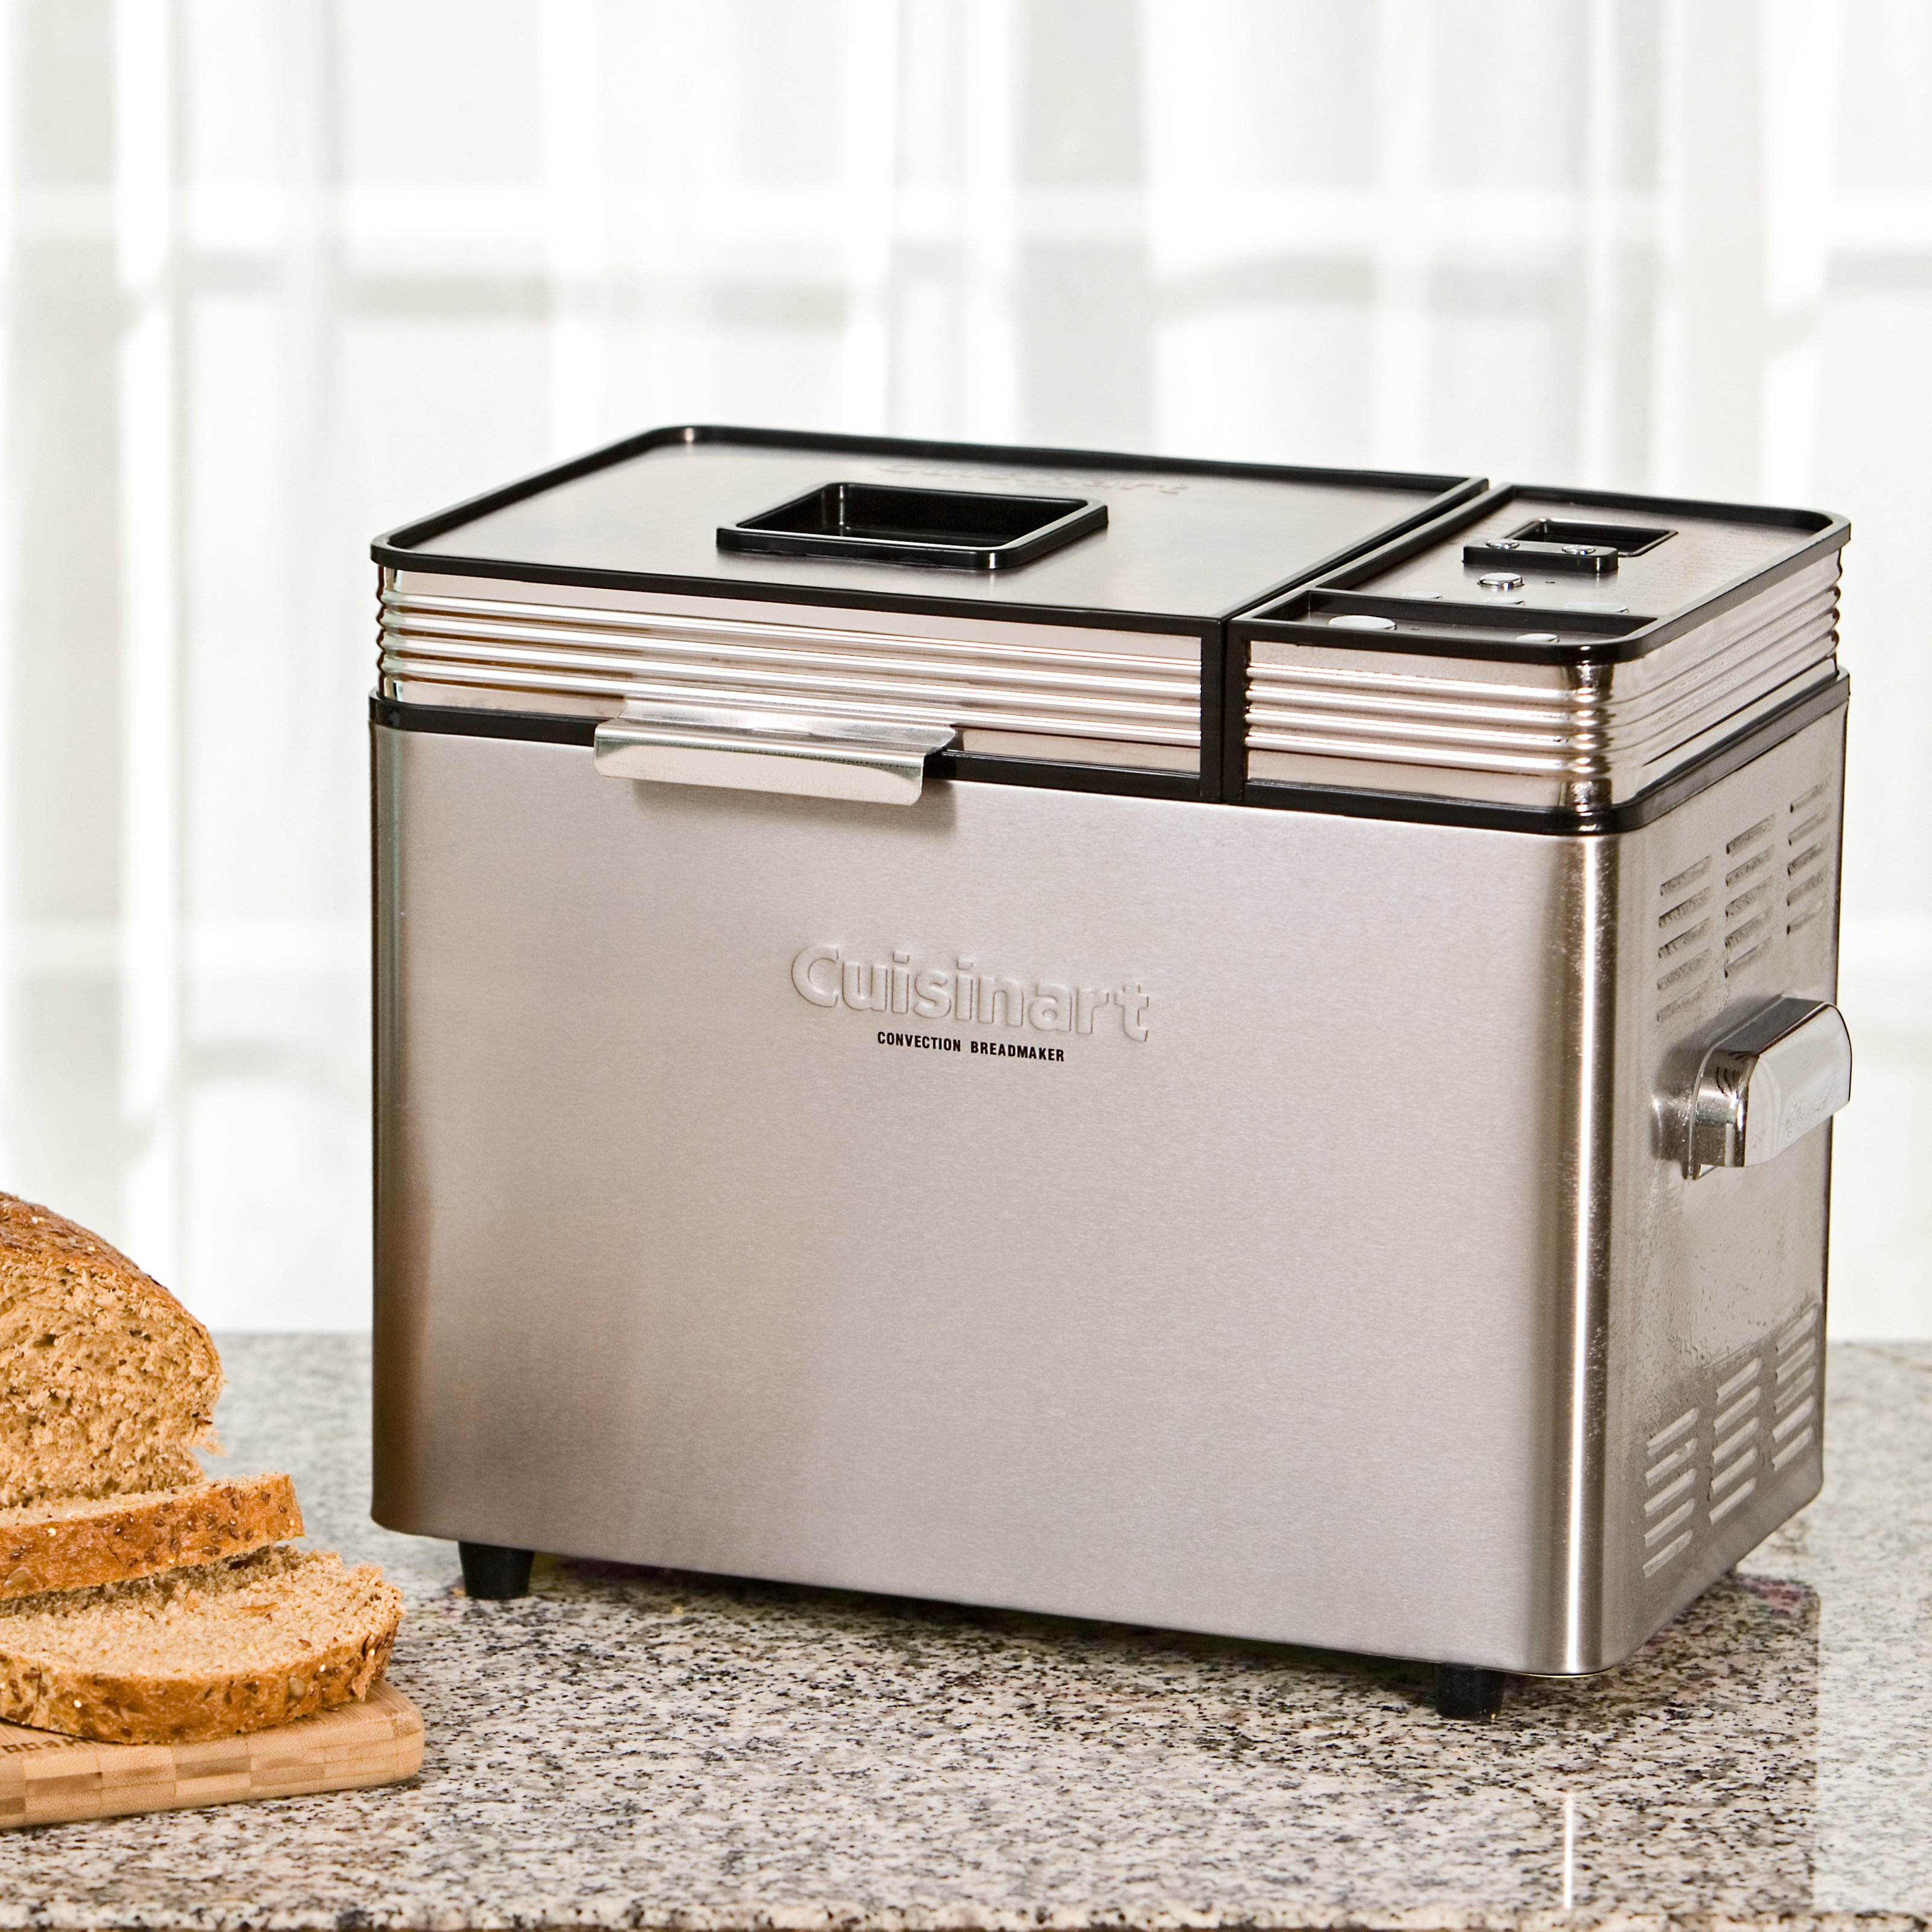 Cuisinart CBK-200 2 lb. Convection Bread Maker